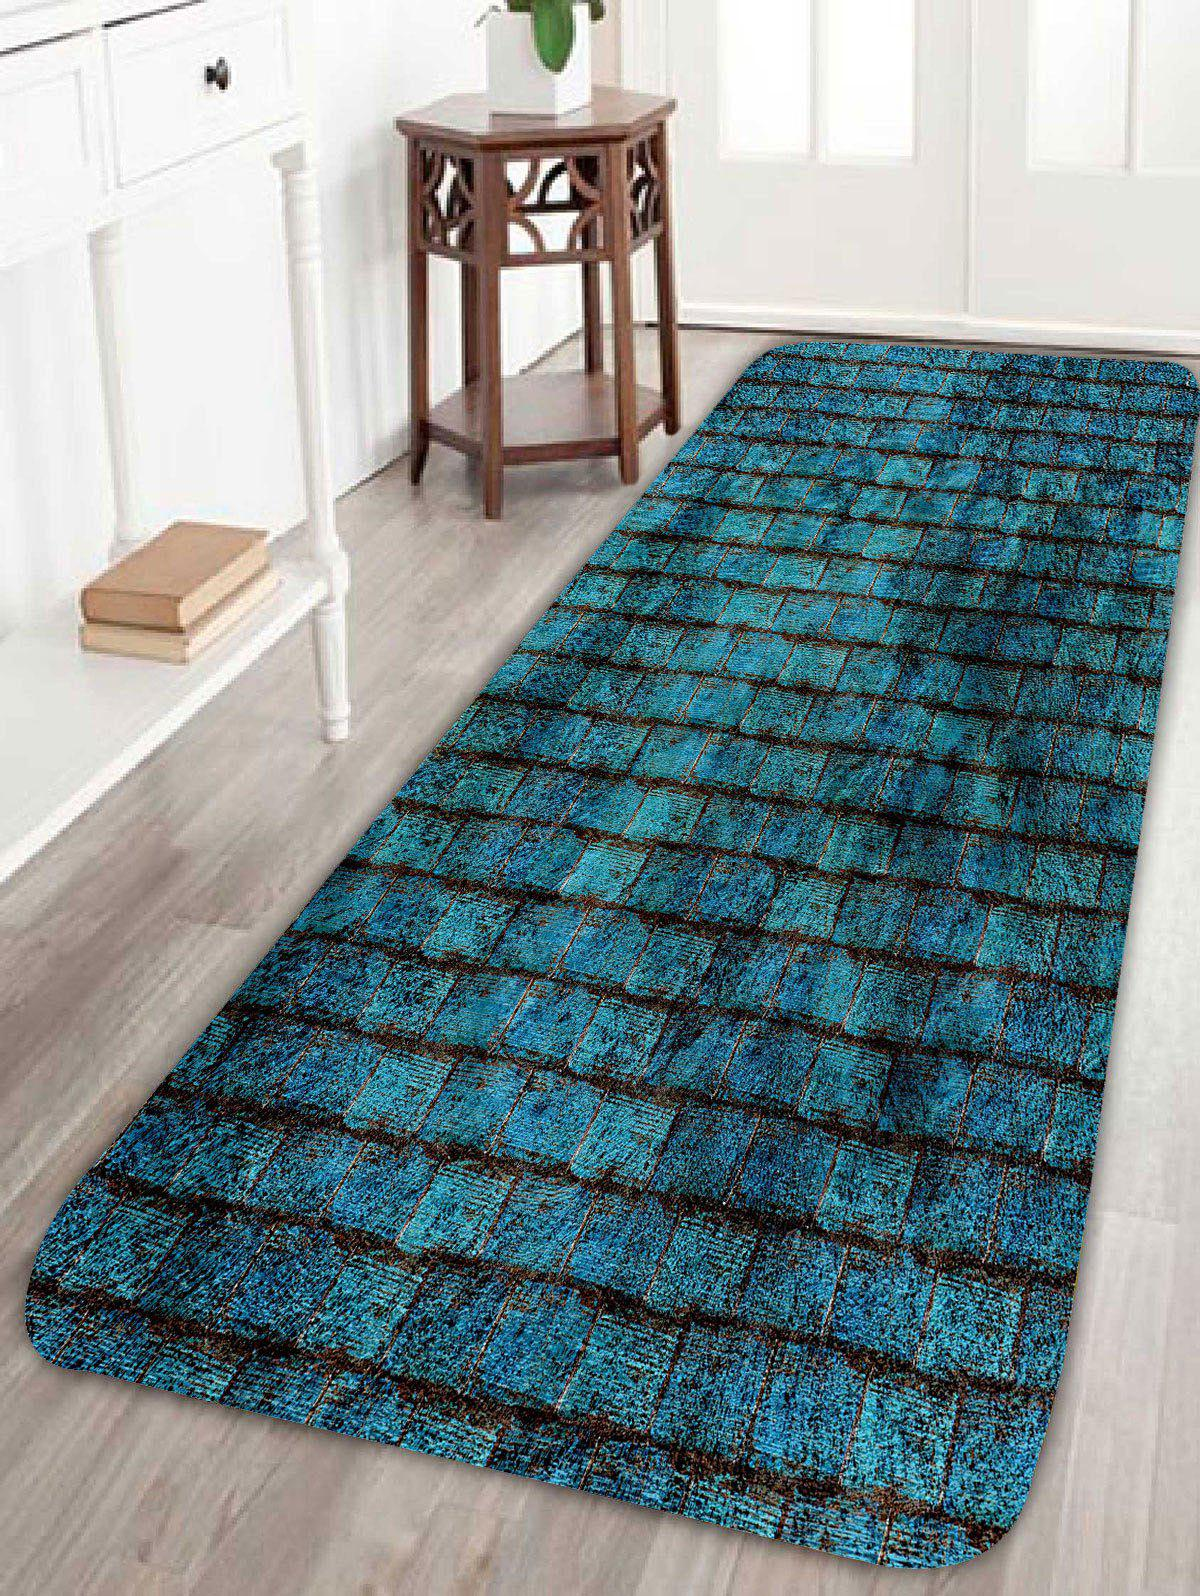 Brick Wall Soft Absorbent Door Entrance MatHOME<br><br>Size: W24 INCH * L71 INCH; Color: BLUE; Products Type: Bath rugs; Materials: Coral FLeece; Pattern: Print; Style: Vintage; Shape: Rectangle; Package Contents: 1 x Rug;